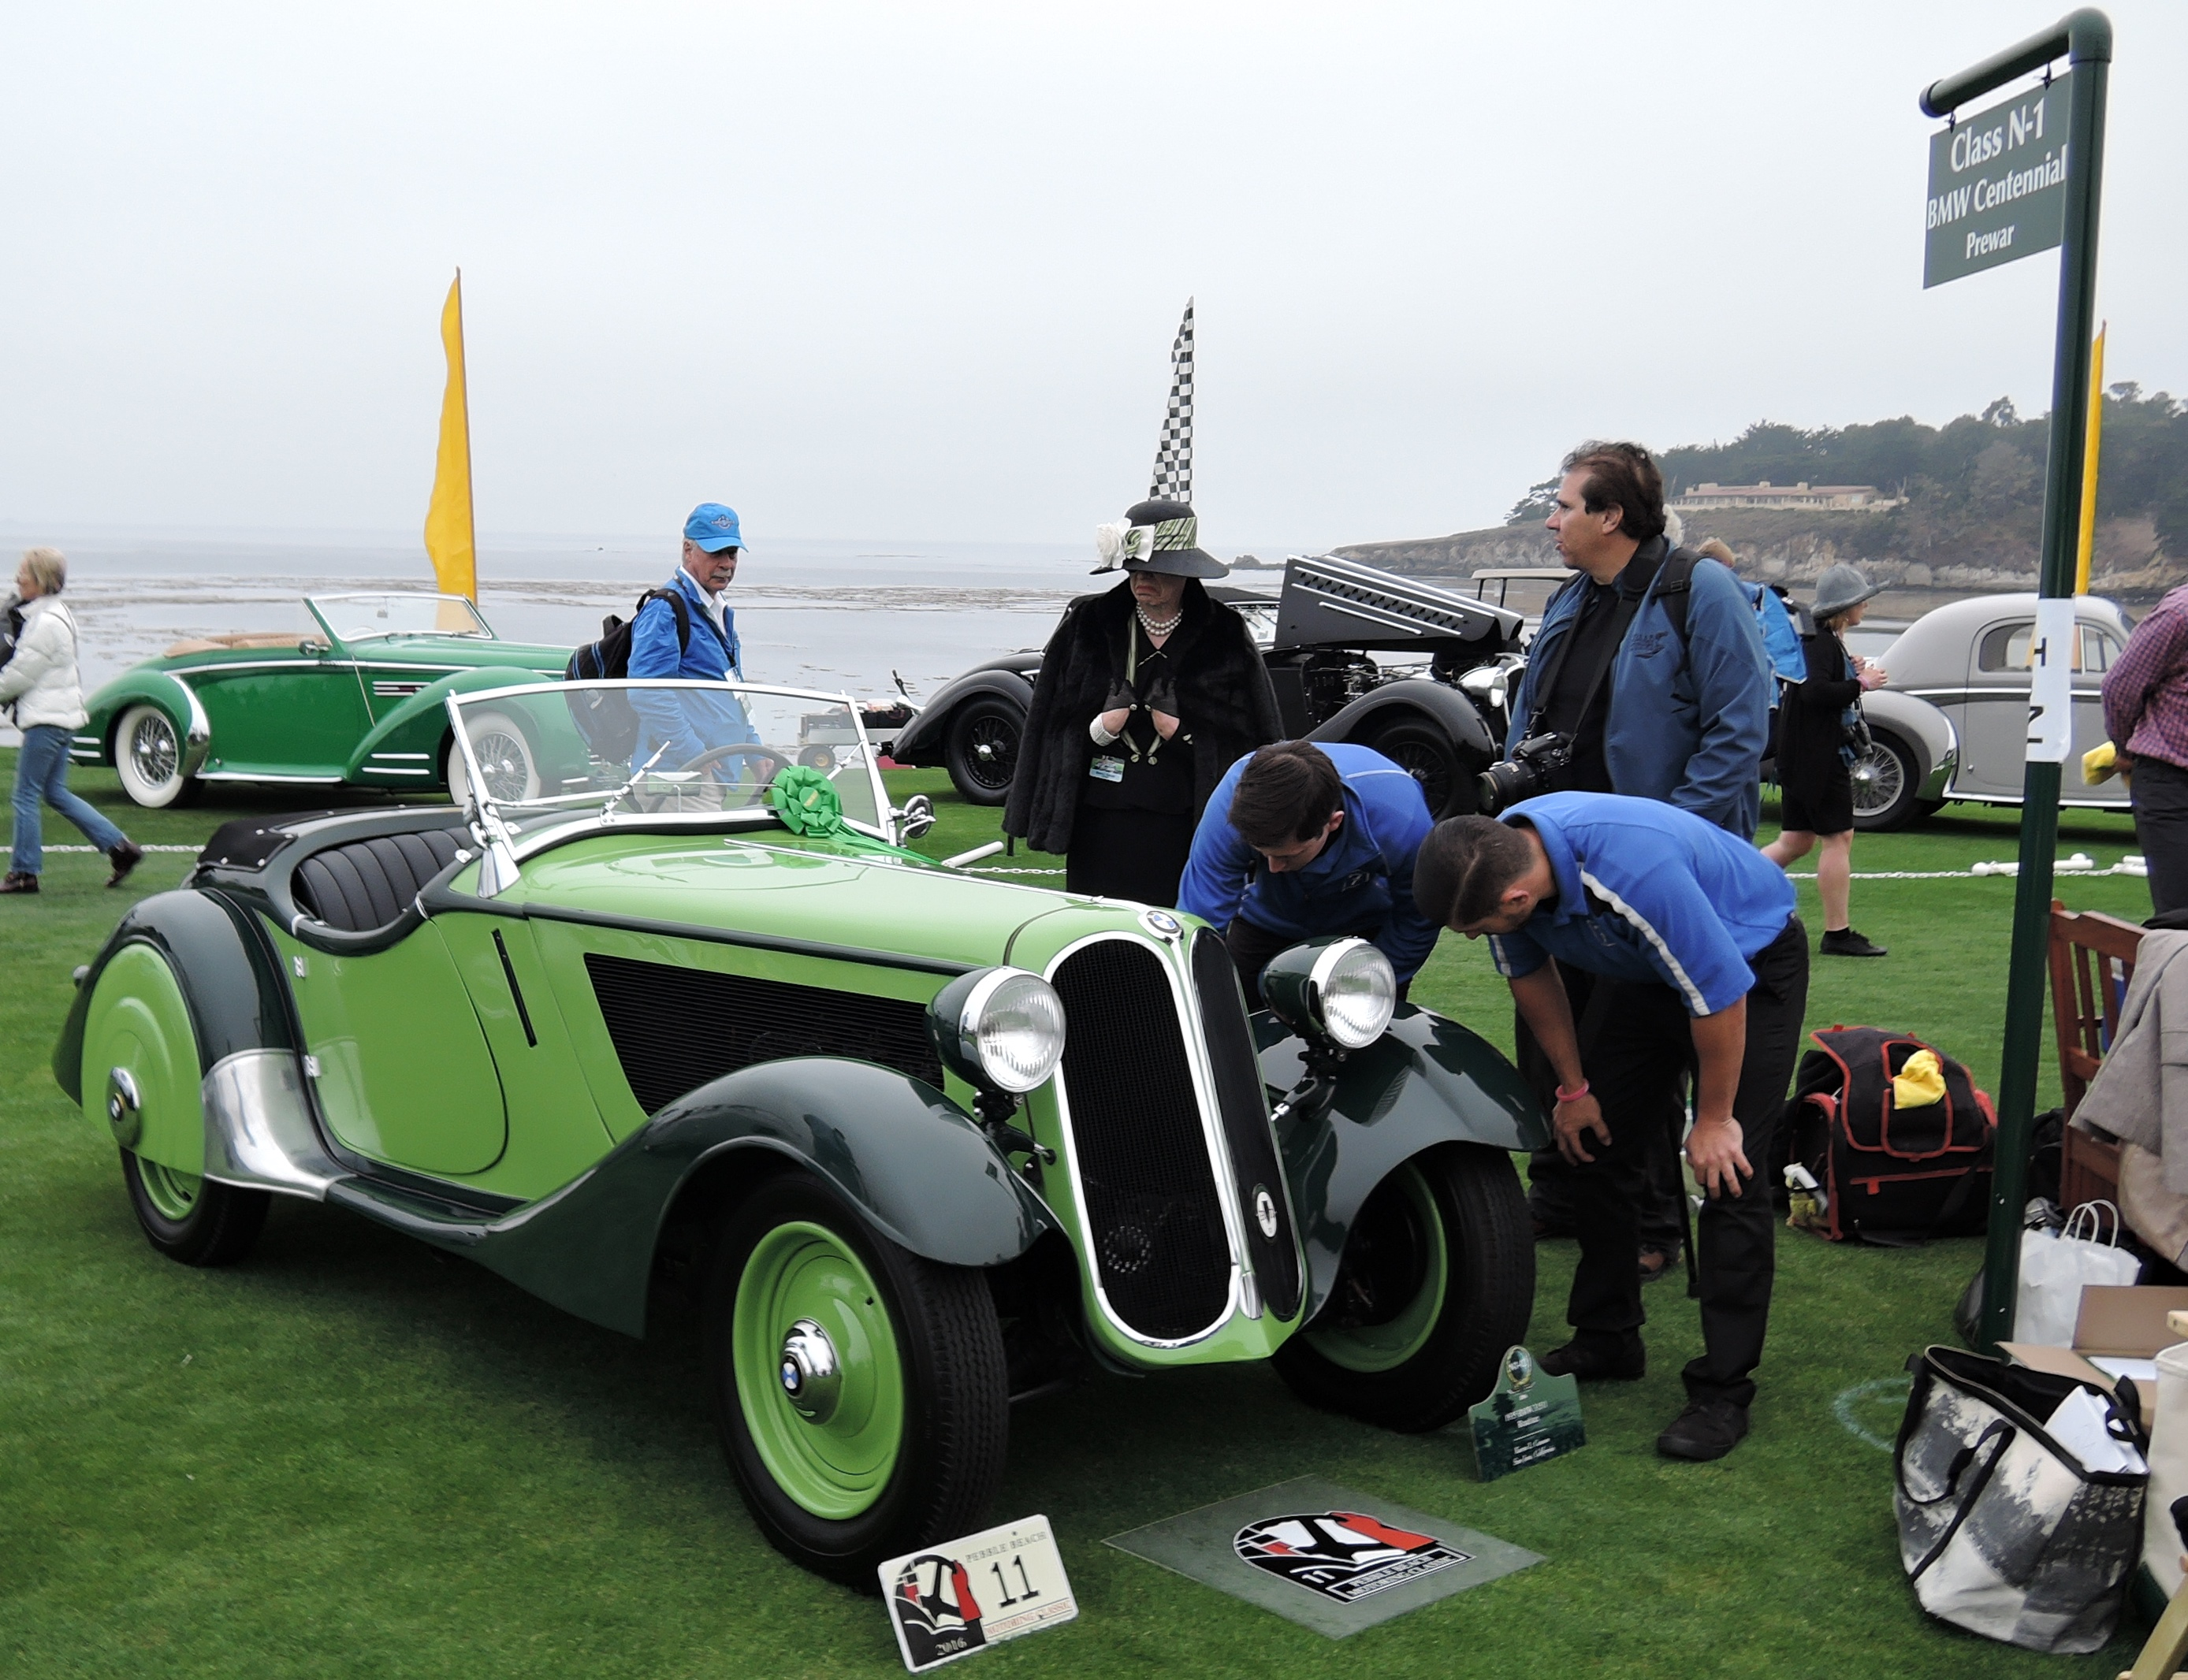 green 1935 BMW 315/1 Roadster - Pebble Beach Concours d'Elegance 2016